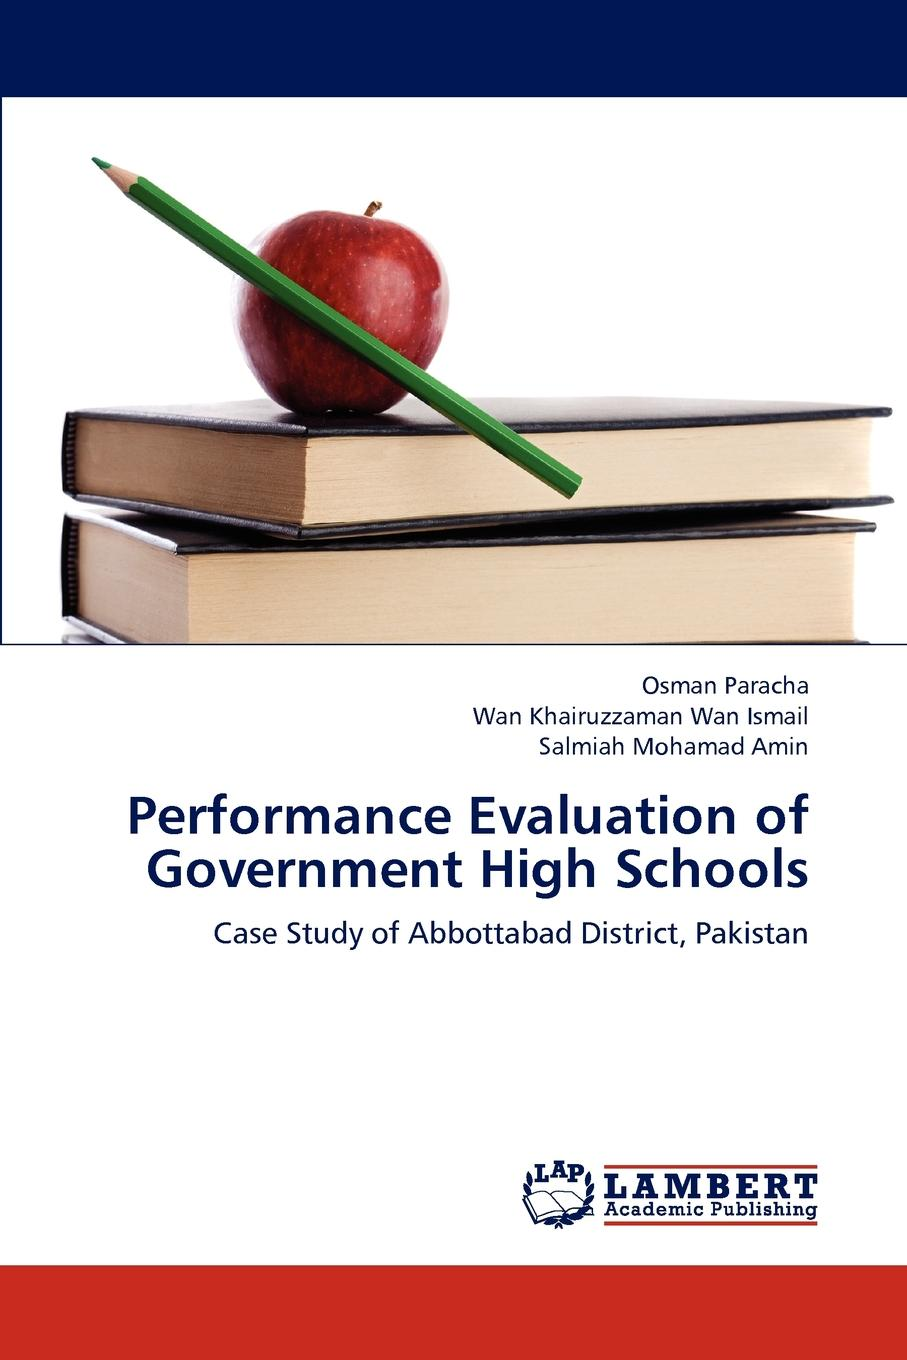 Osman Paracha, Wan Khairuzzaman Wan Ismail, Salmiah Mohamad Amin Performance Evaluation of Government High Schools недорго, оригинальная цена